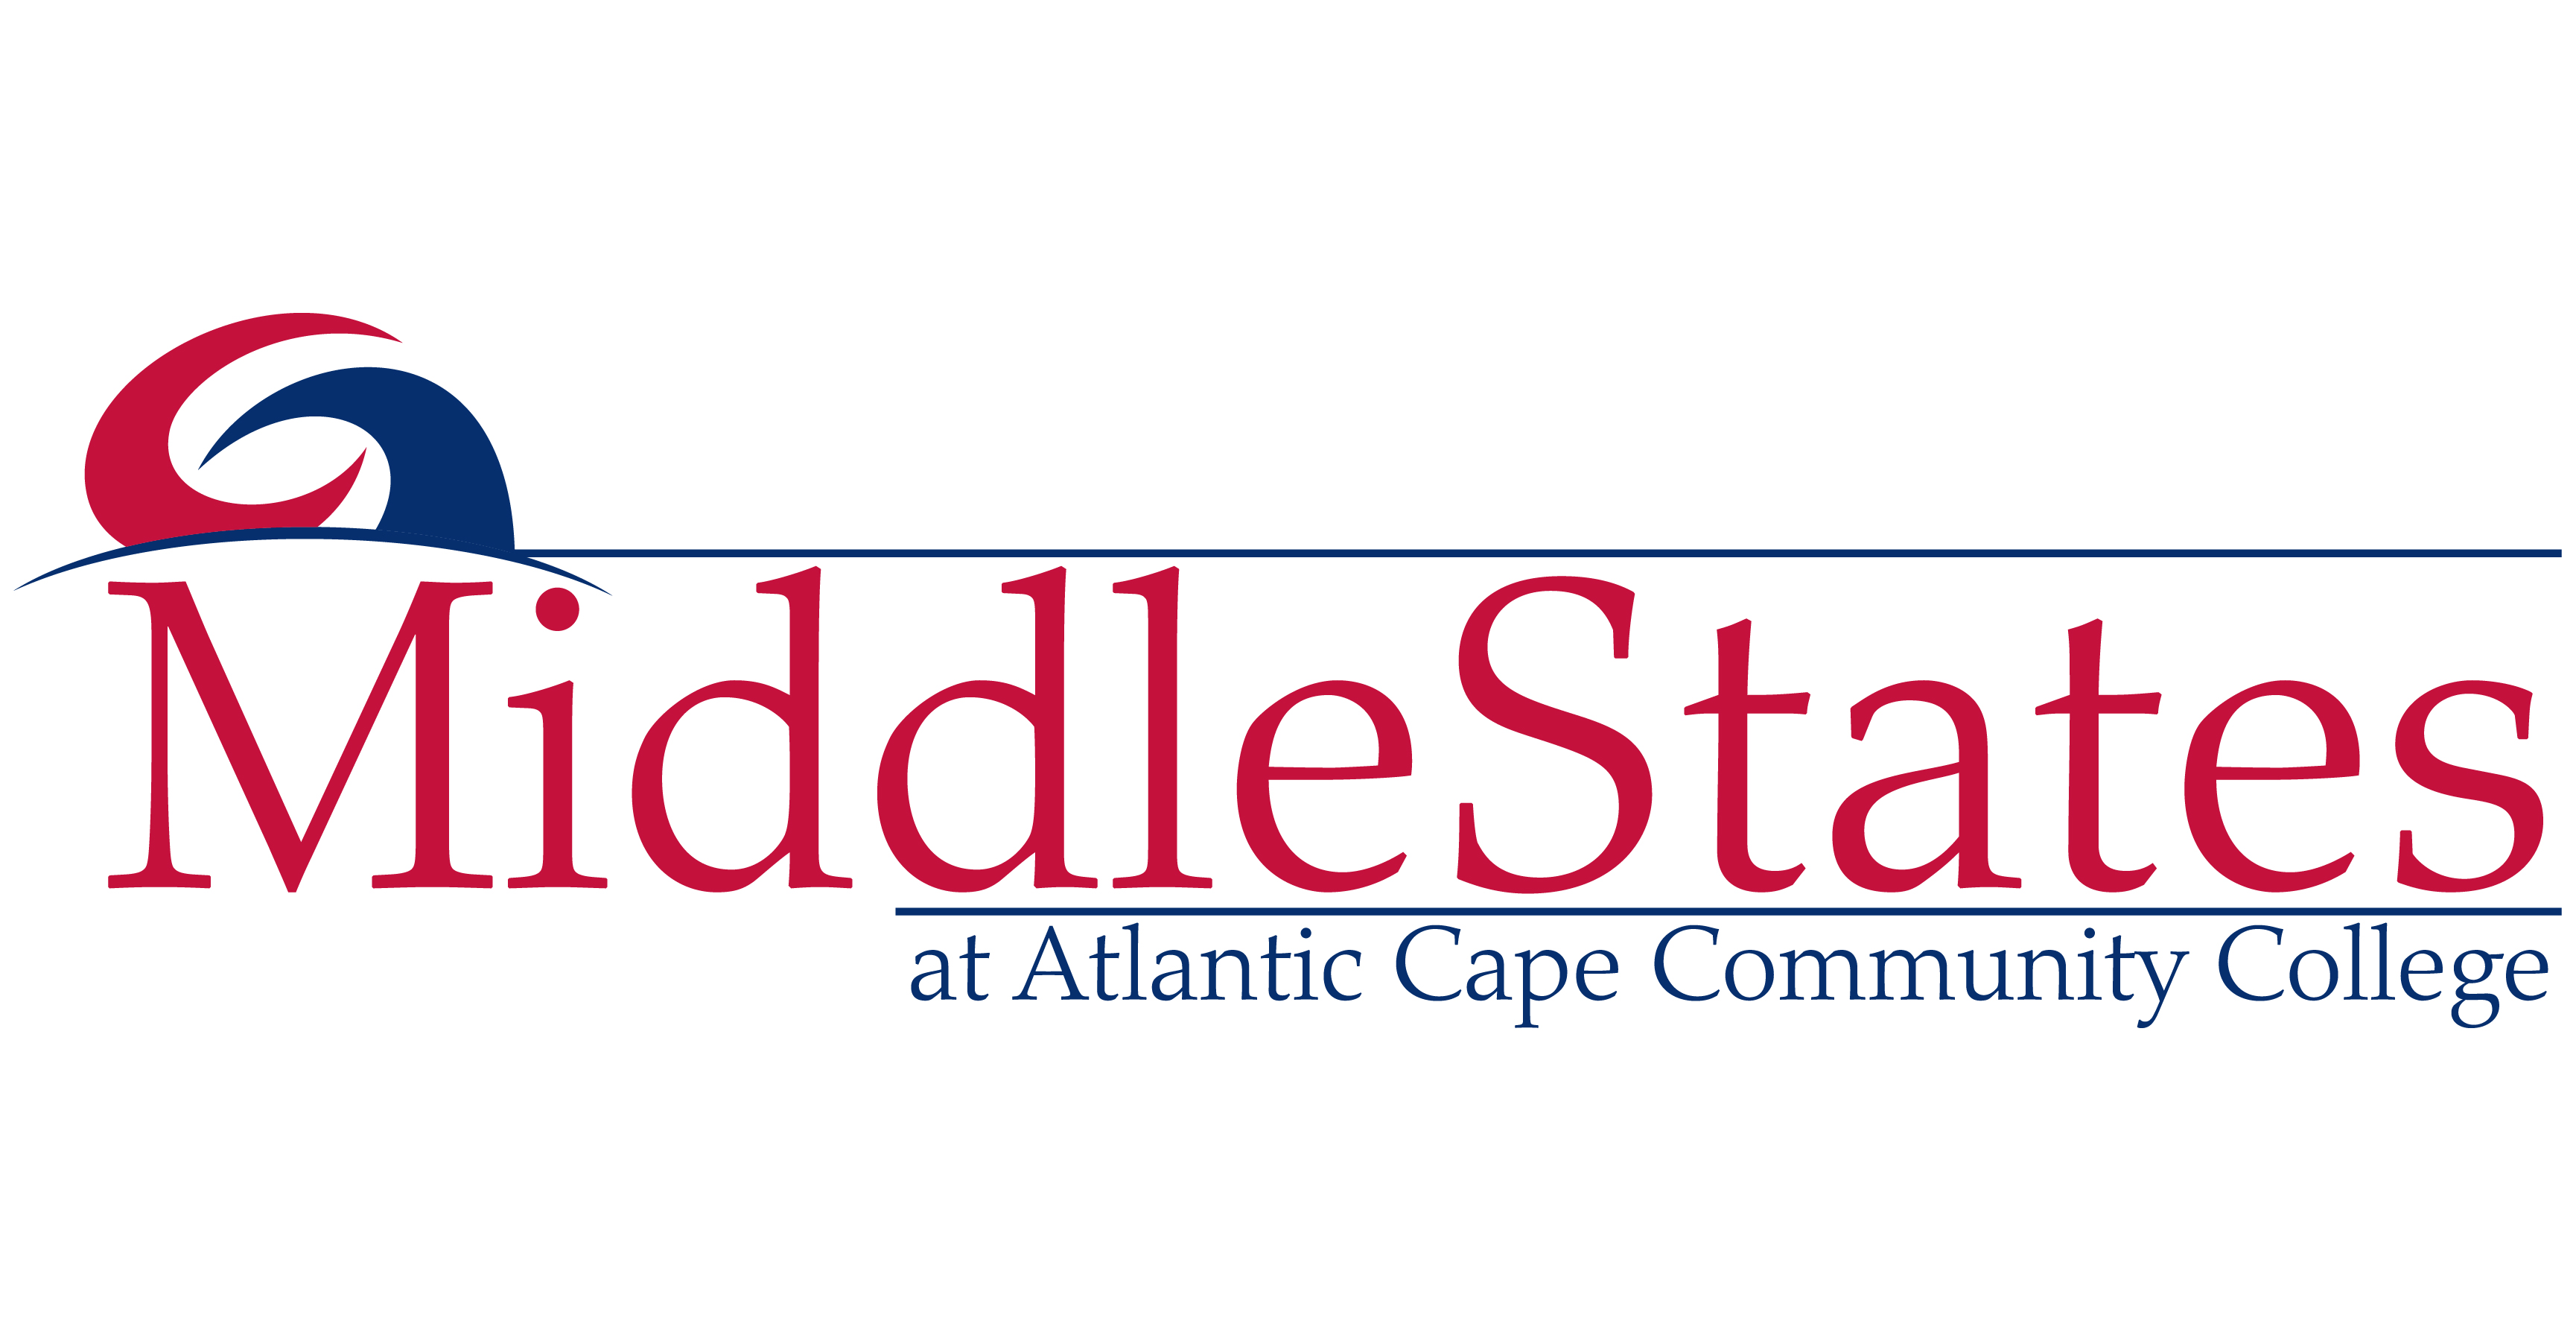 Middle States at Atlantic Cape